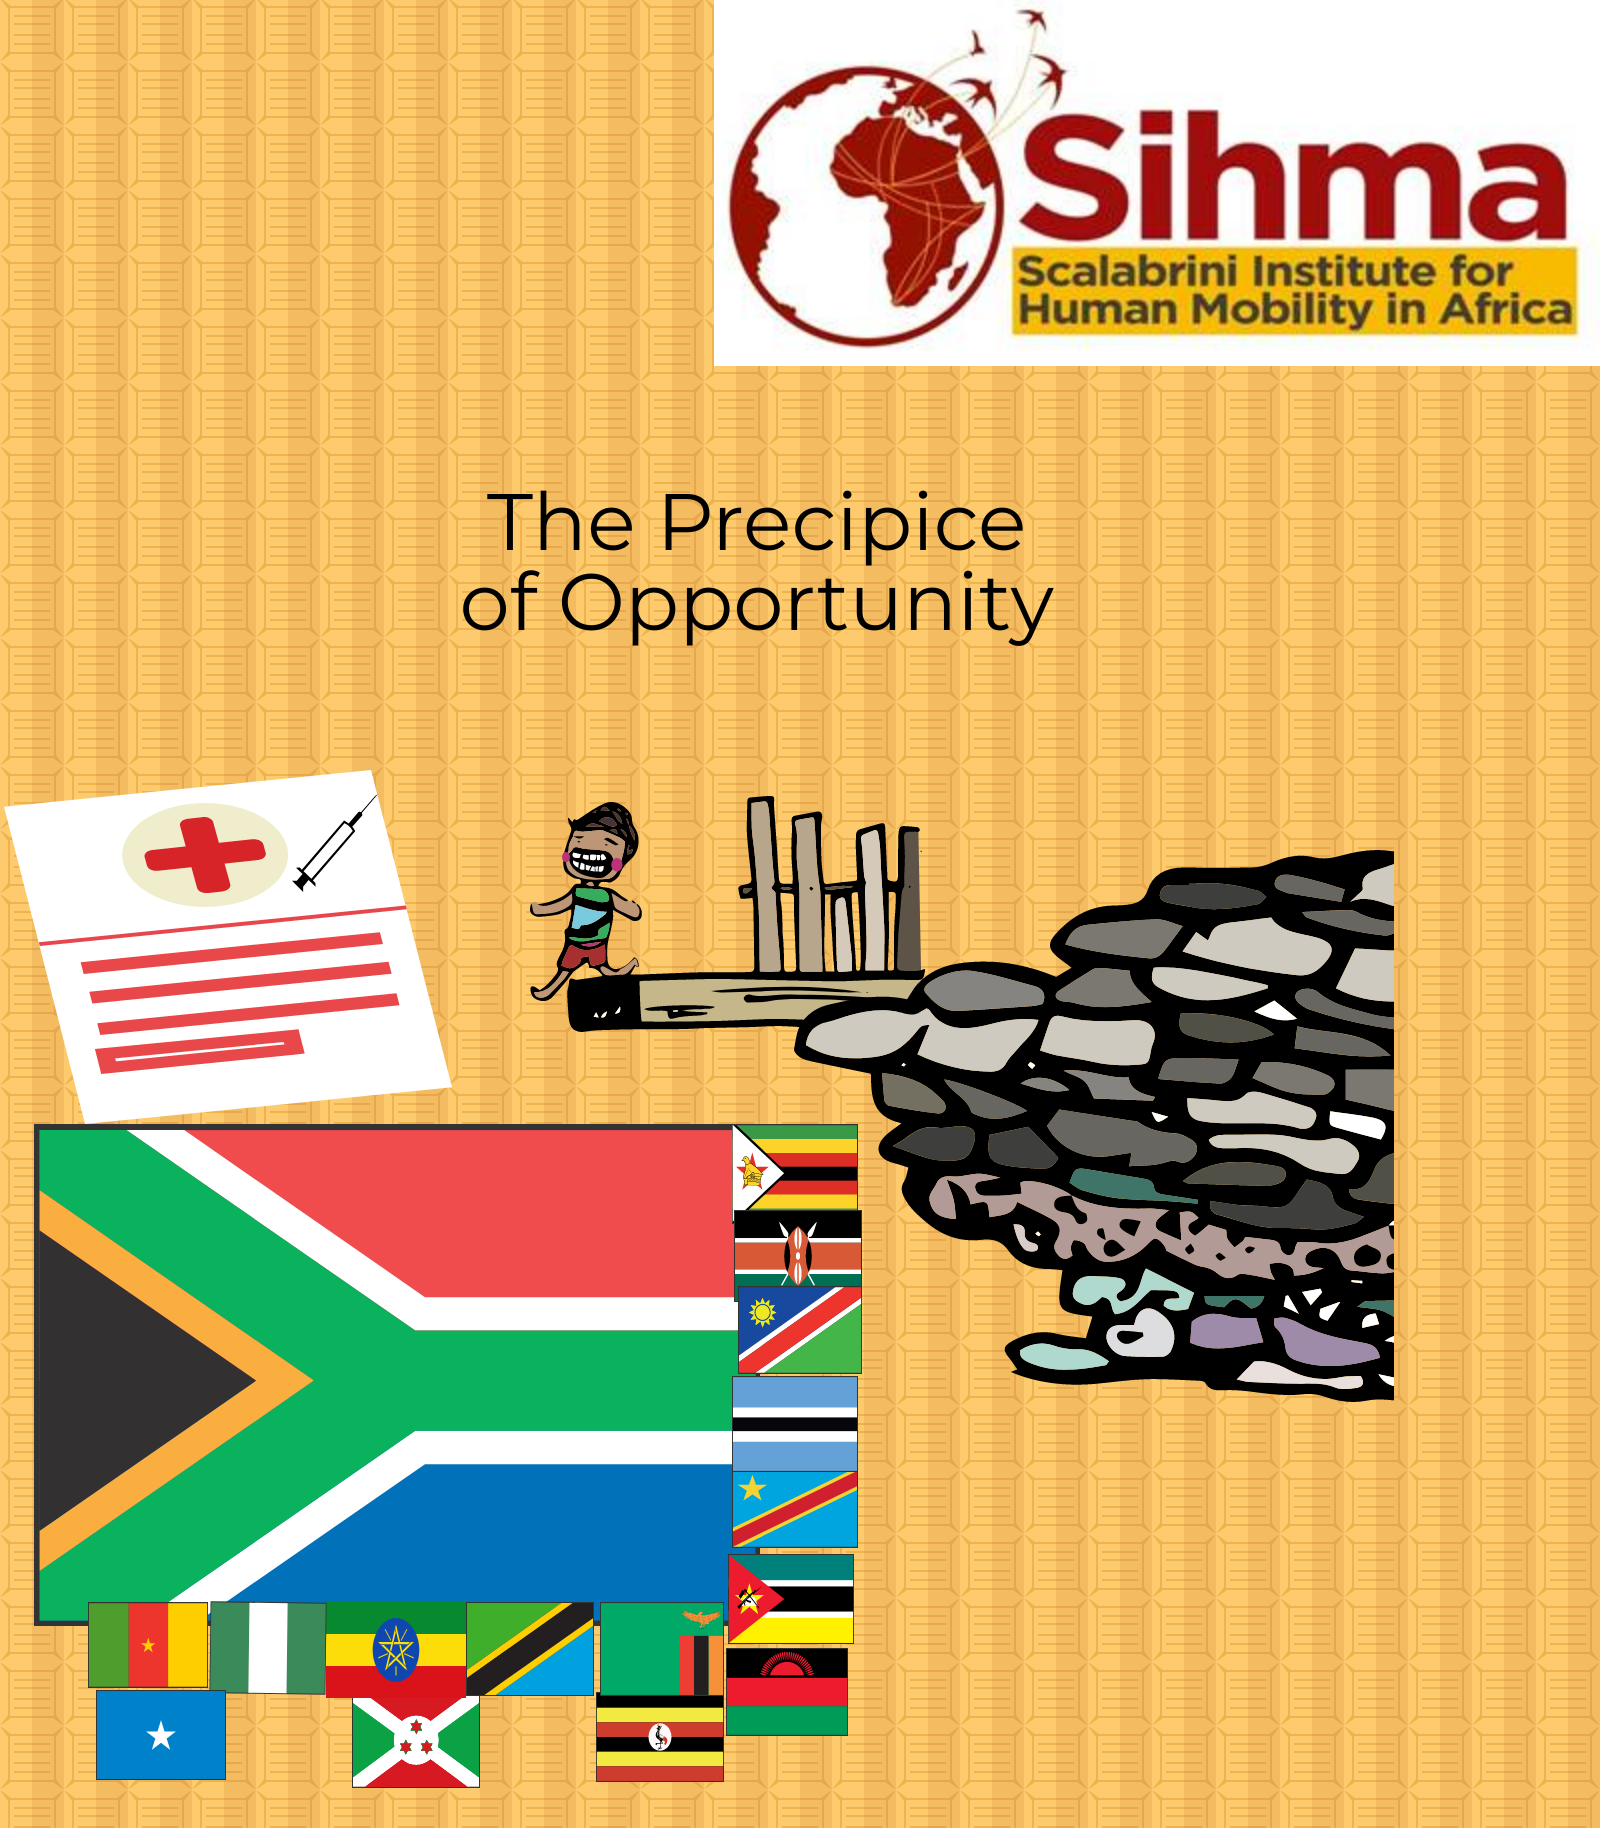 https://www.sihma.org.za/photos/shares/blog precipice of opportunity.png